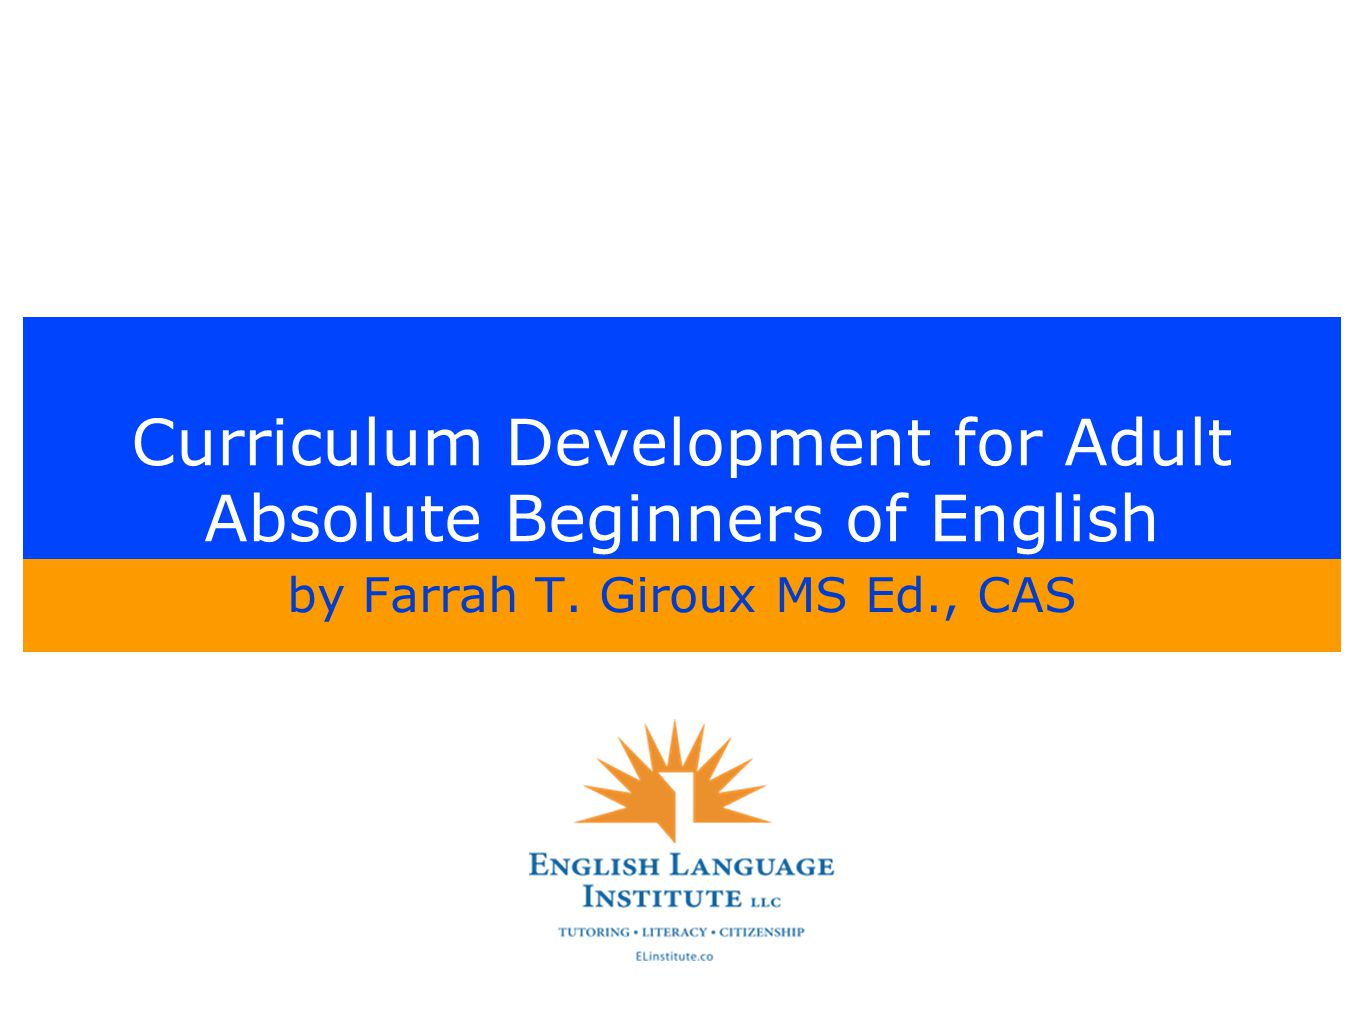 Curriculum Development for Adult Absolute Beginners of English by Farrah T. Giroux MS Ed., CAS